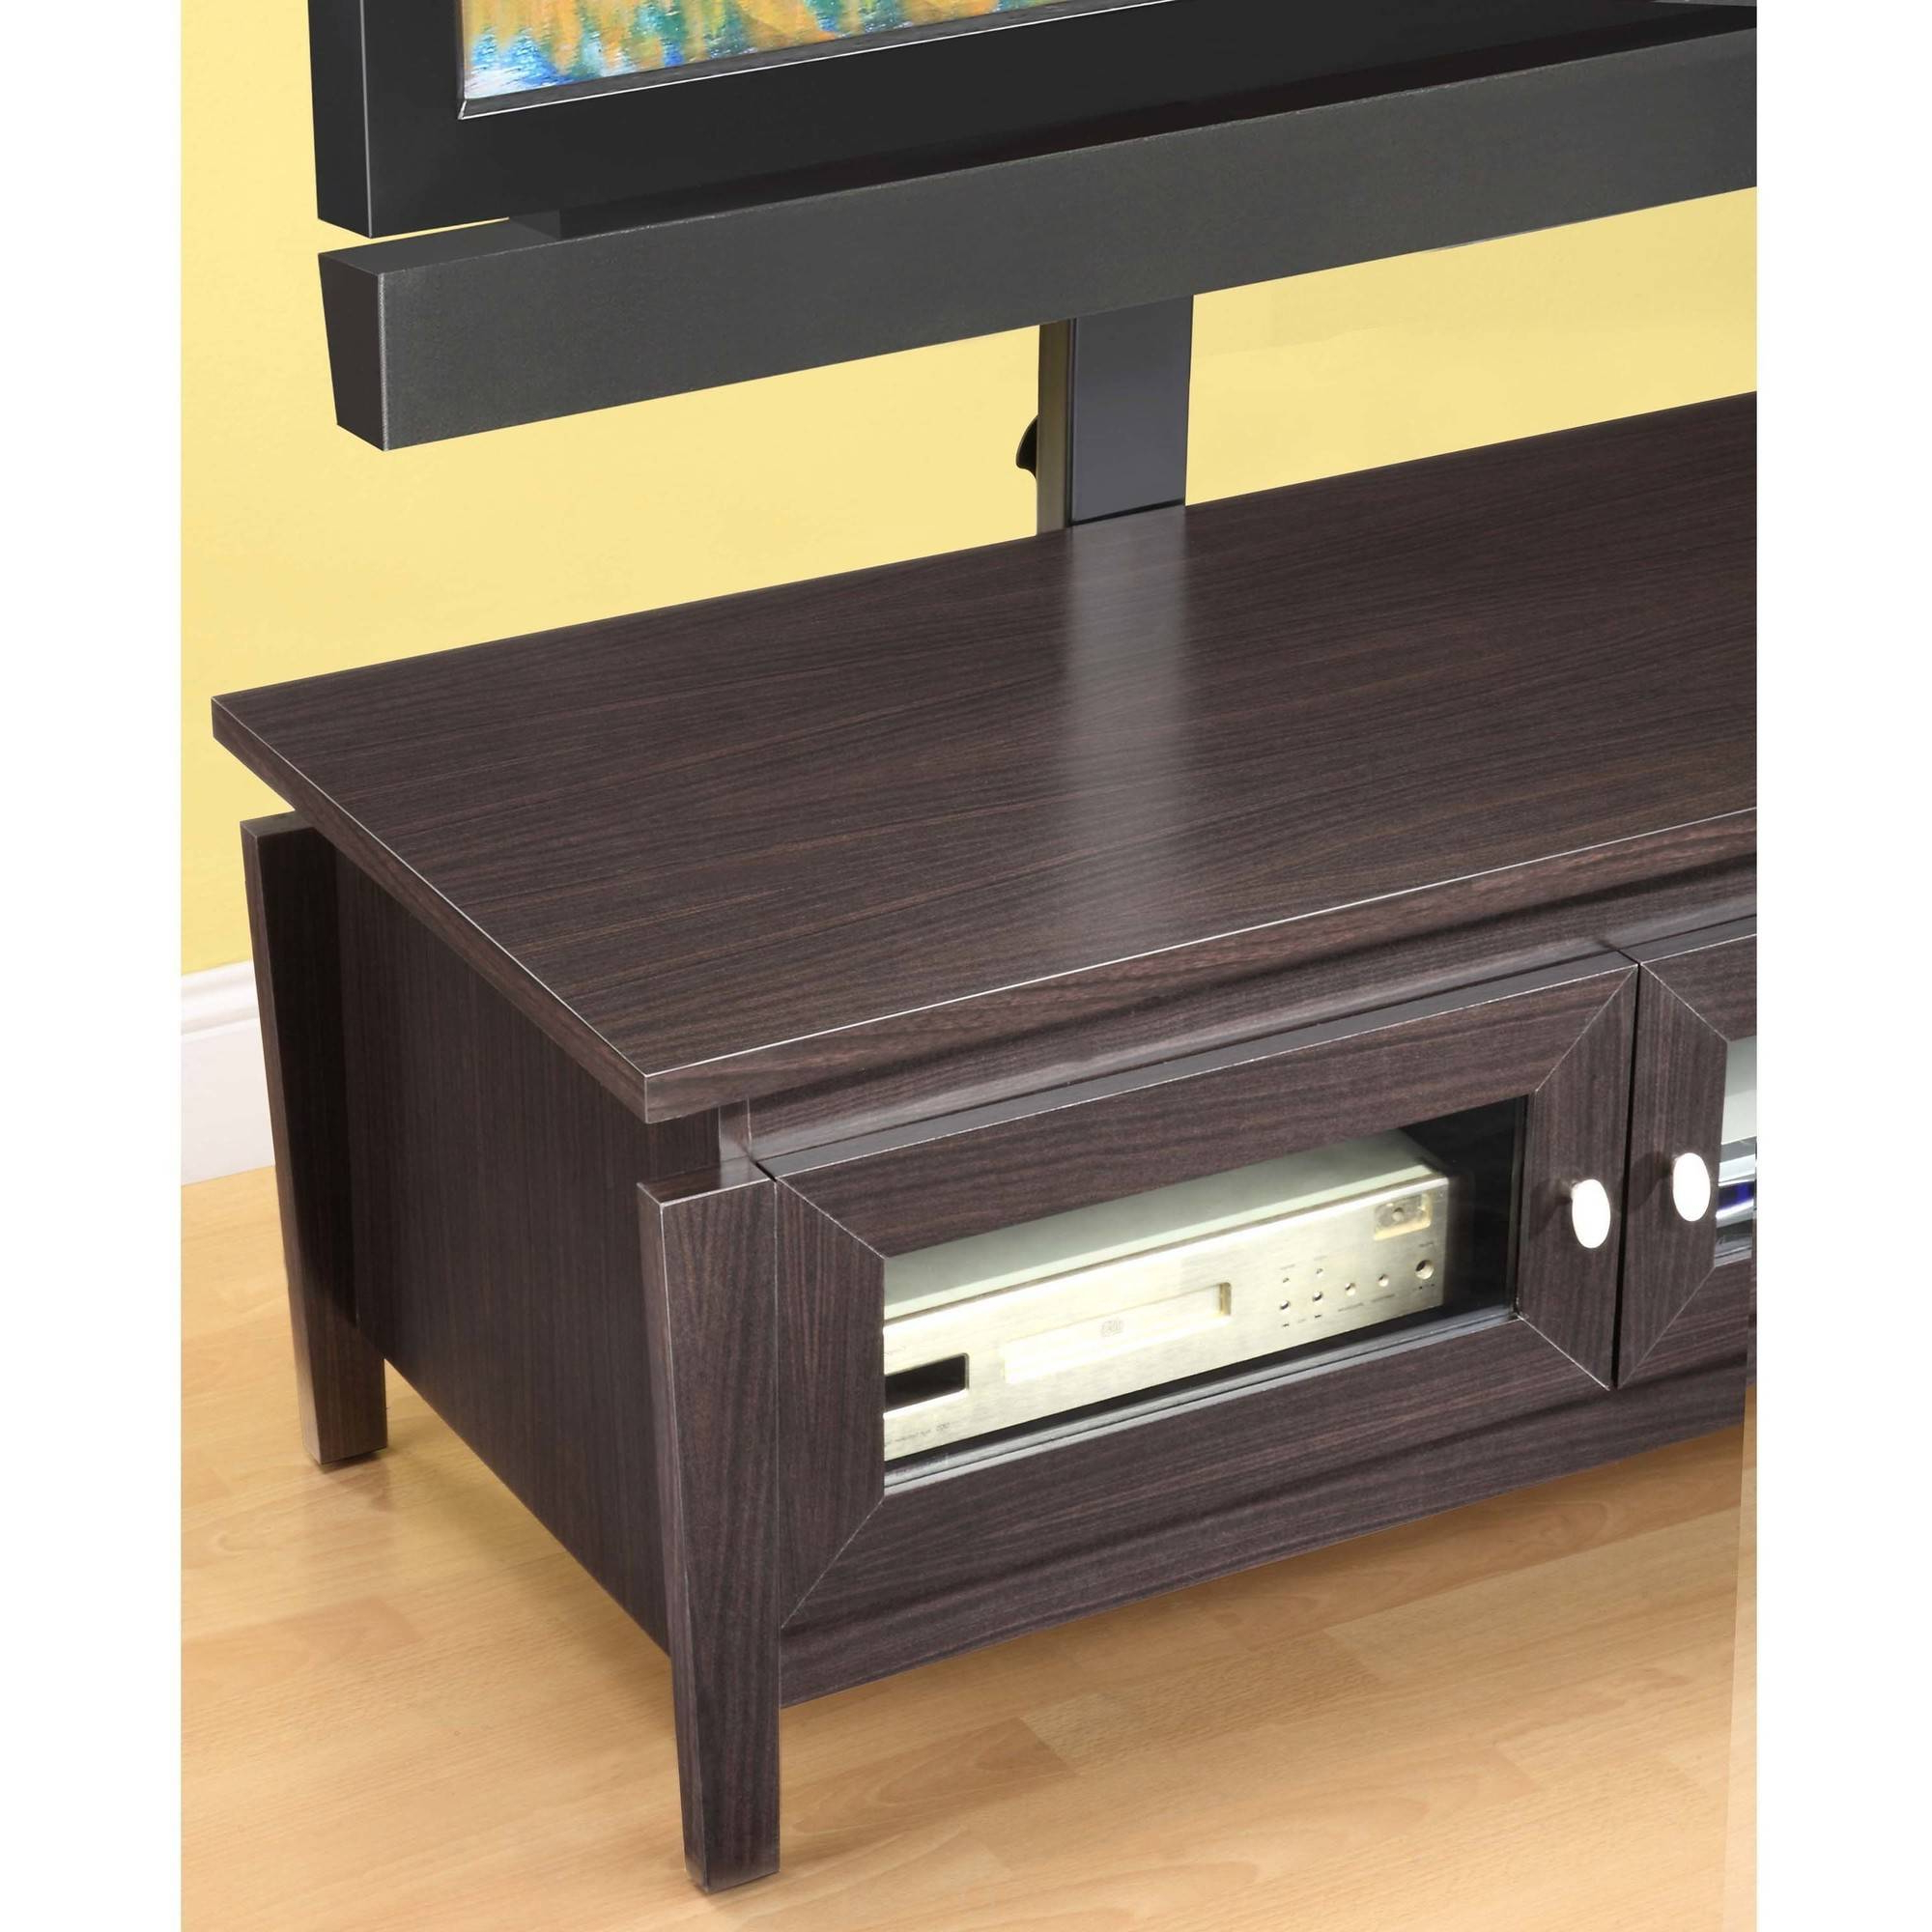 "Widely Used Whalen Tv Stand With Swinging Mount, For Tvs Up To 50"" – Walmart With Regard To Willa 80 Inch Tv Stands (View 15 of 20)"